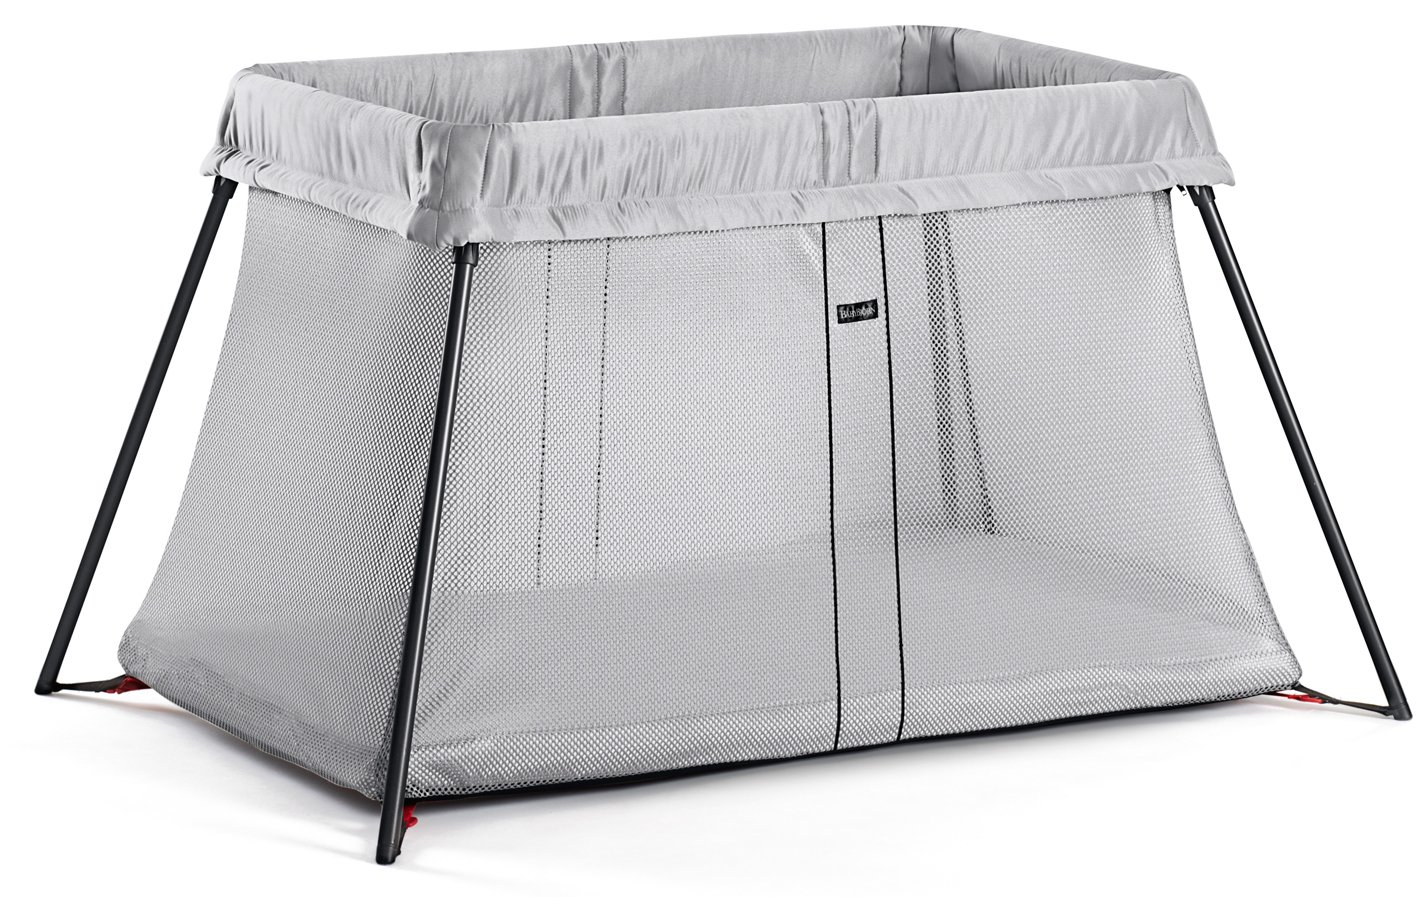 BABYBJORN Travel Crib Light - Silver by BabyBjörn